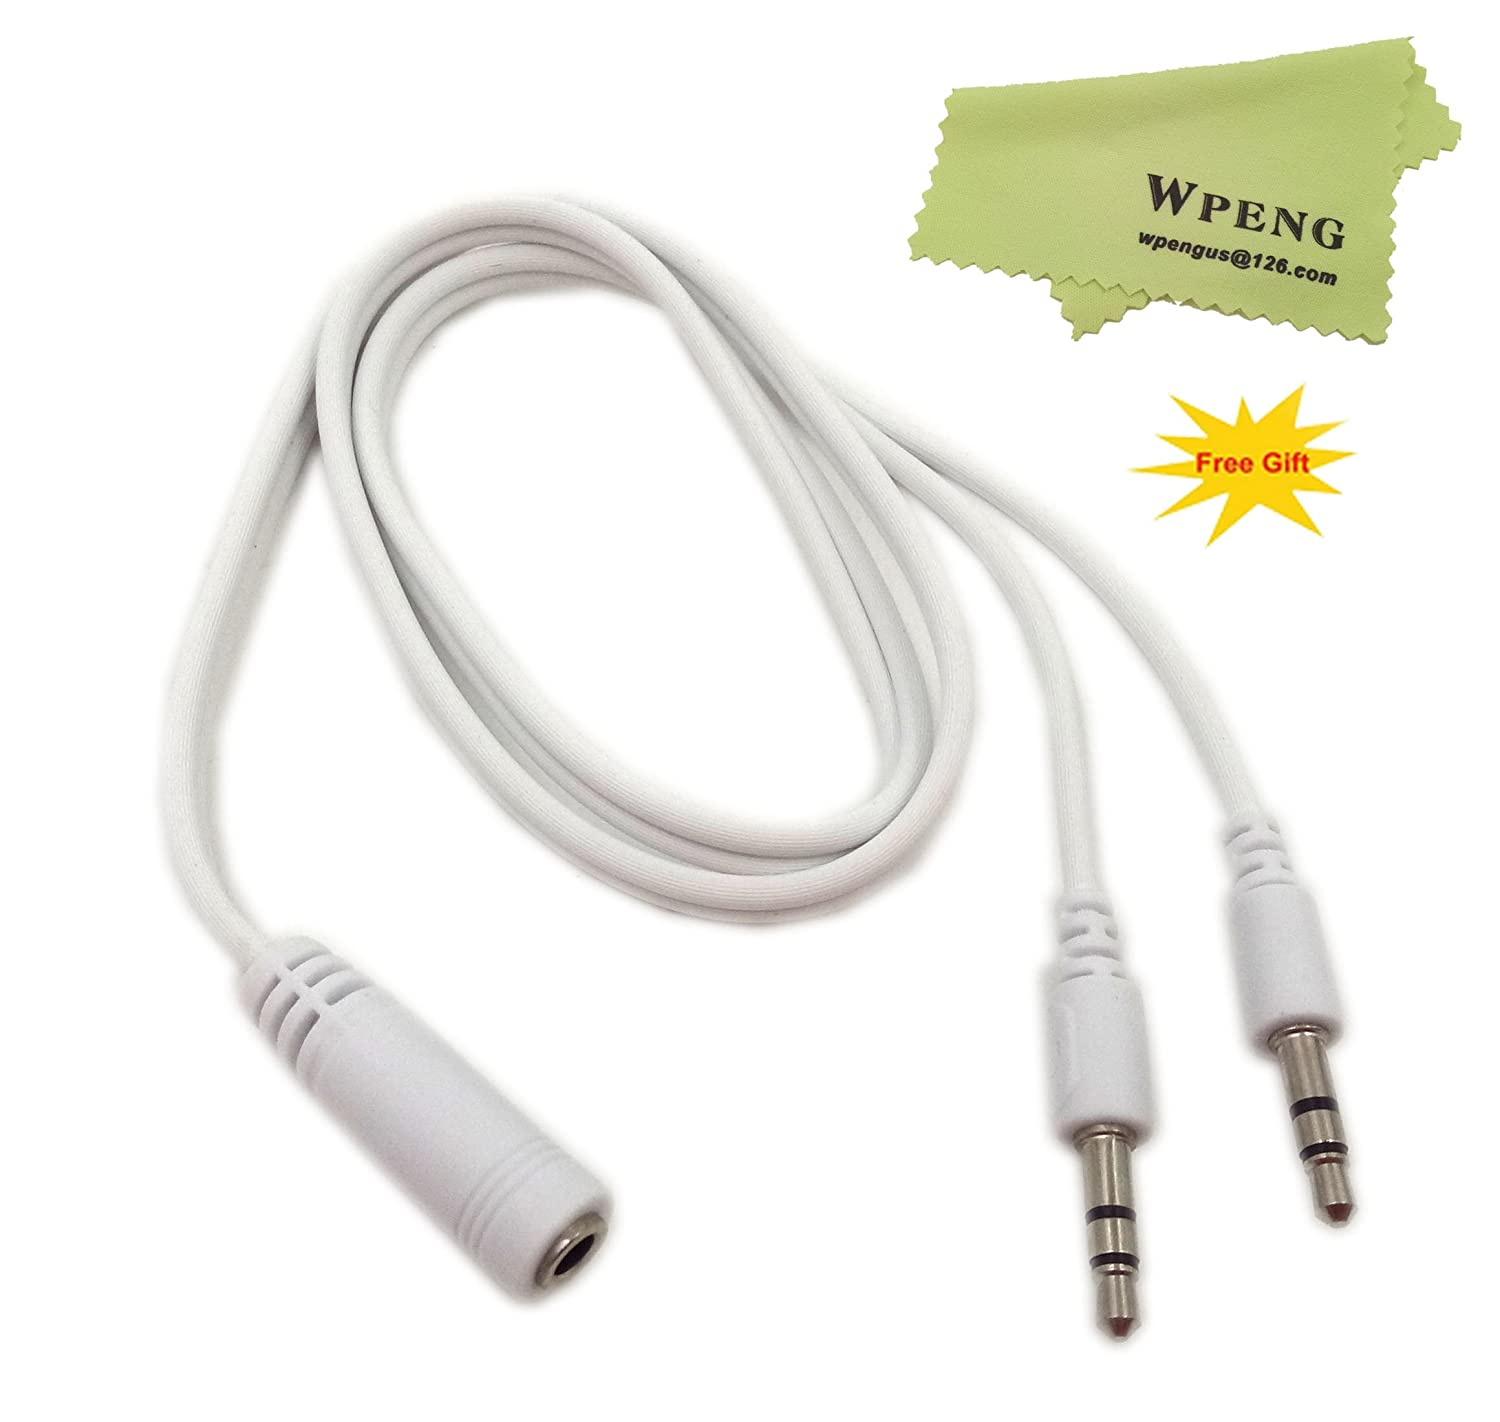 Wpeng 2Ft 3.5mm Female to 2 Male Headphone Mic Audio Y Splitter Cable with Separate Headphone / Microphone Plugs, White(3.5F/2 M) 4330110730